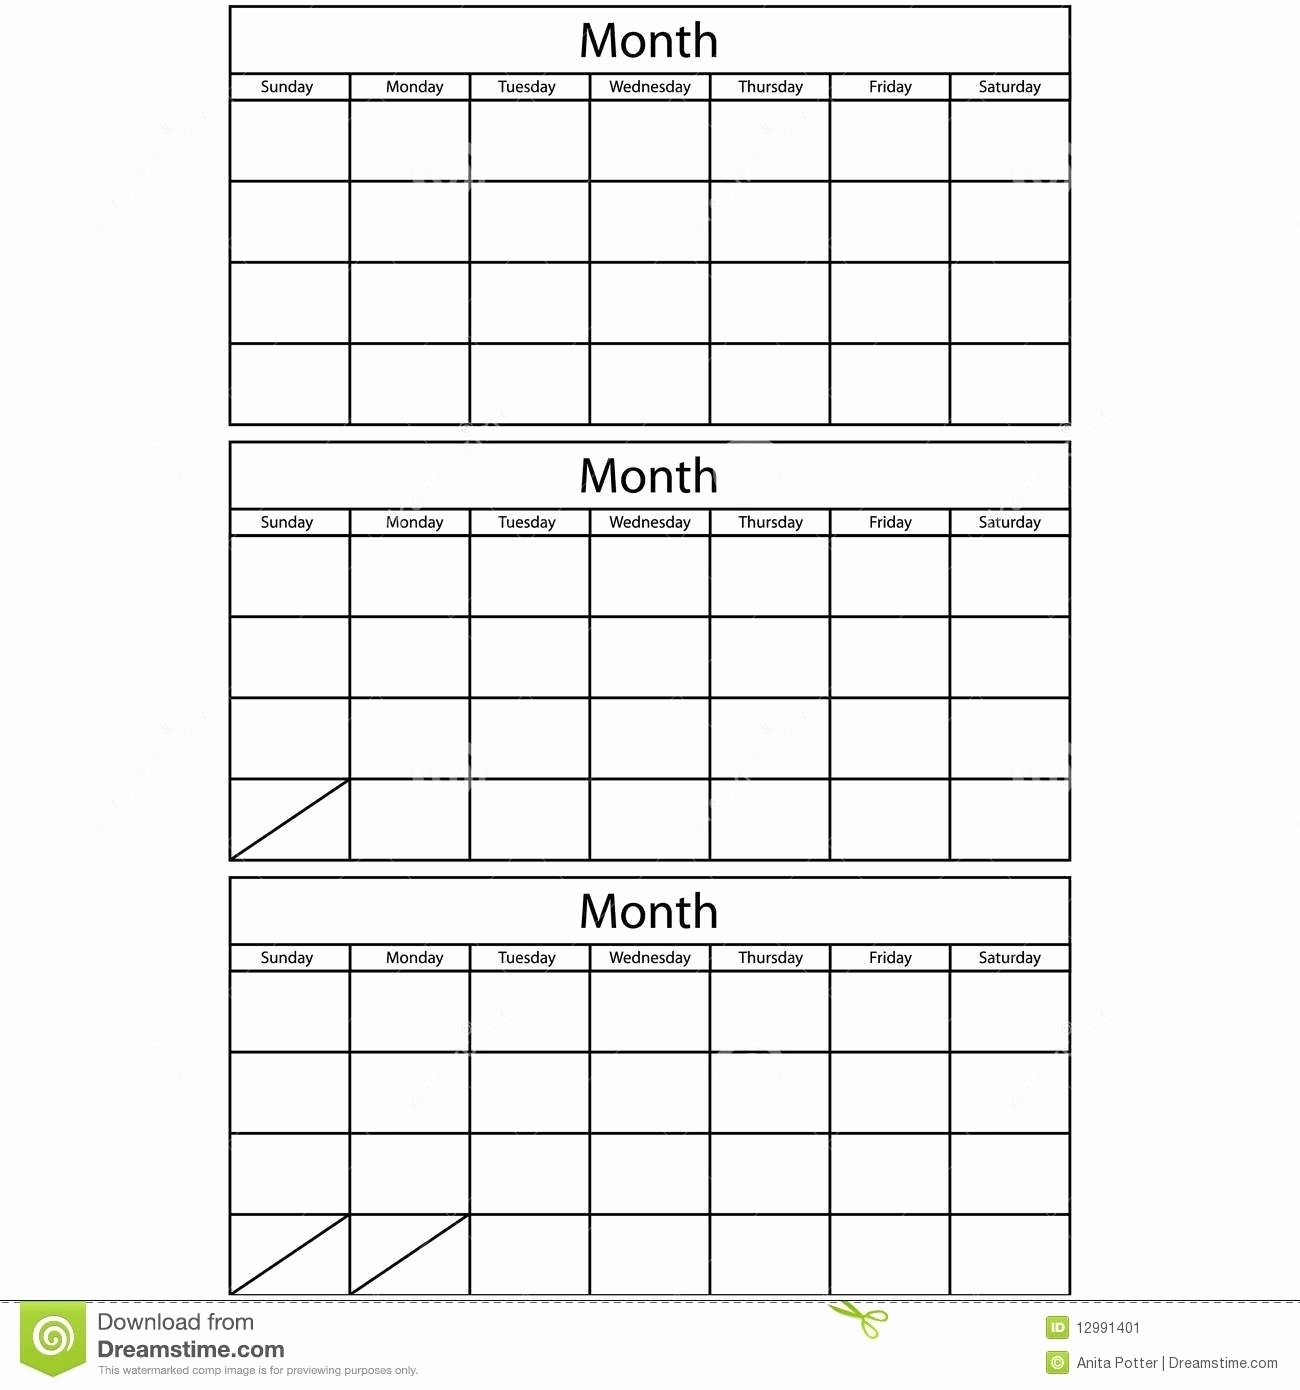 Blank Monthly Lanner Template Calendars To Rint Free Excel Download  3 Month Printable Calendar Template